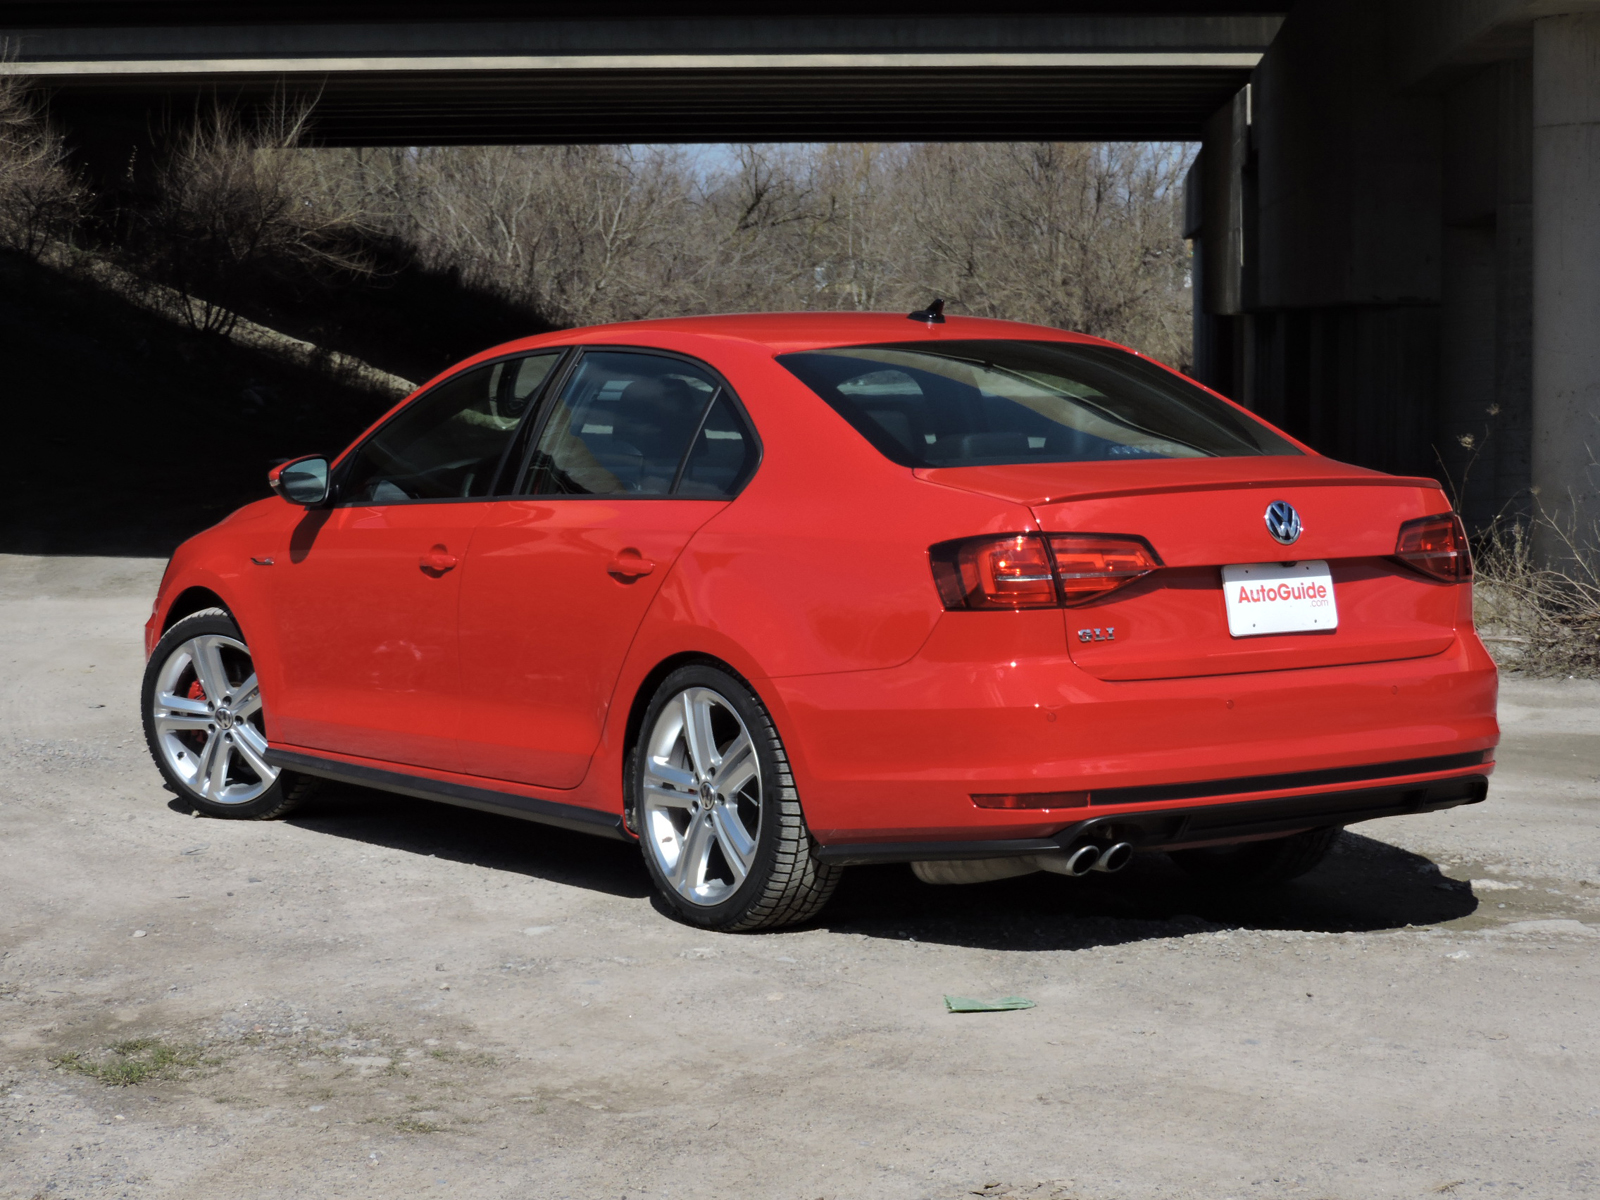 Subaru All Wheel Drive >> 2016 Volkswagen Jetta GLI Review - AutoGuide.com